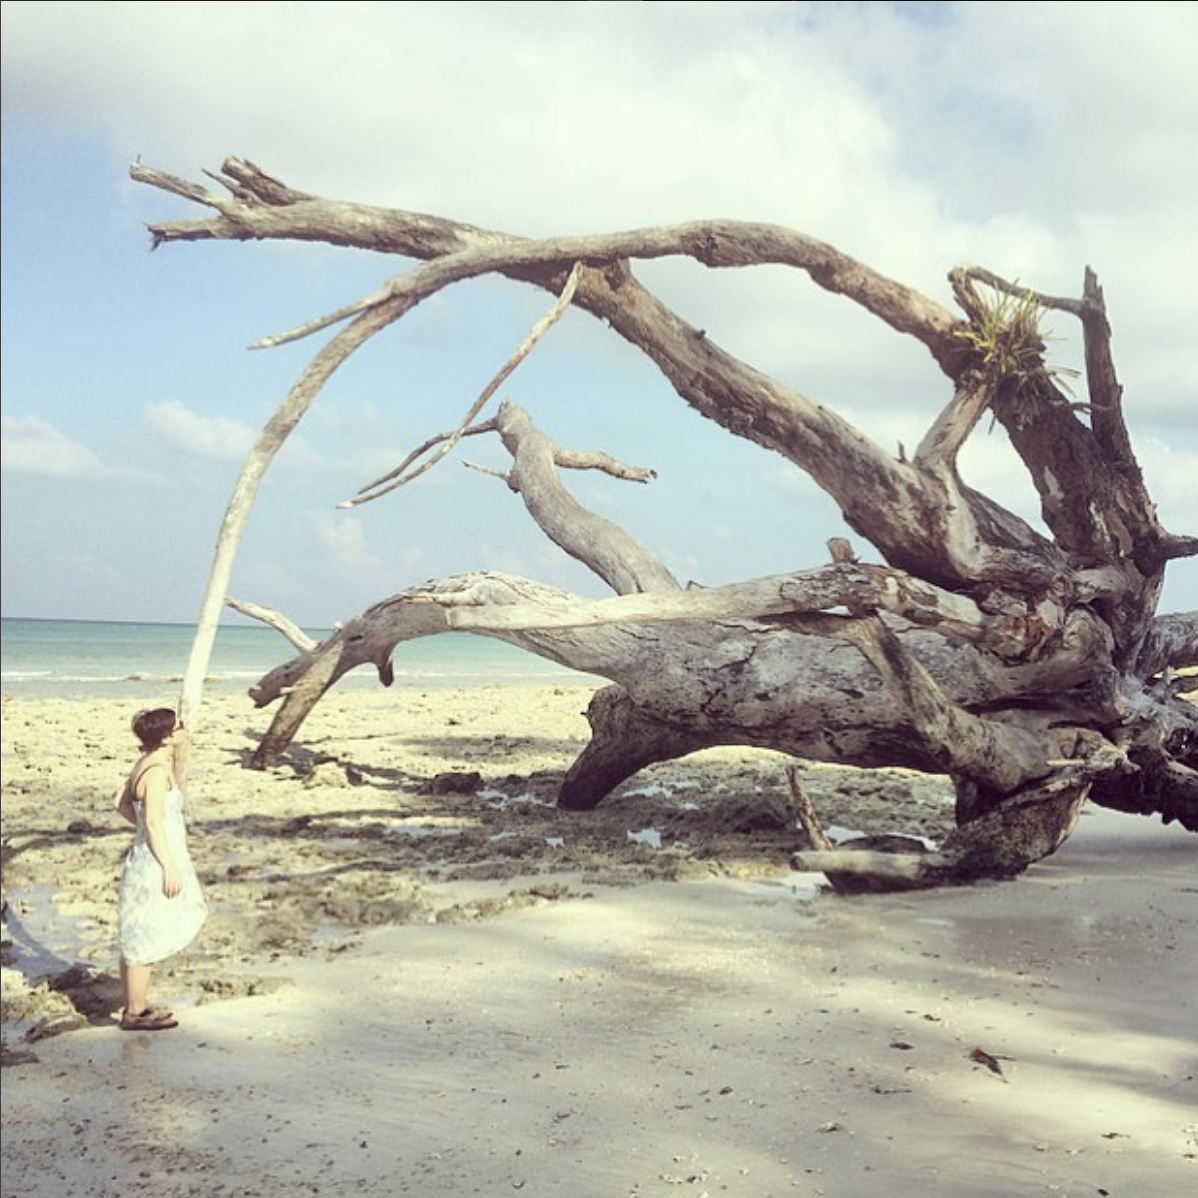 Ruth visiting the Andaman Islands, in an Indian archipelago in the Bay of Bengal.